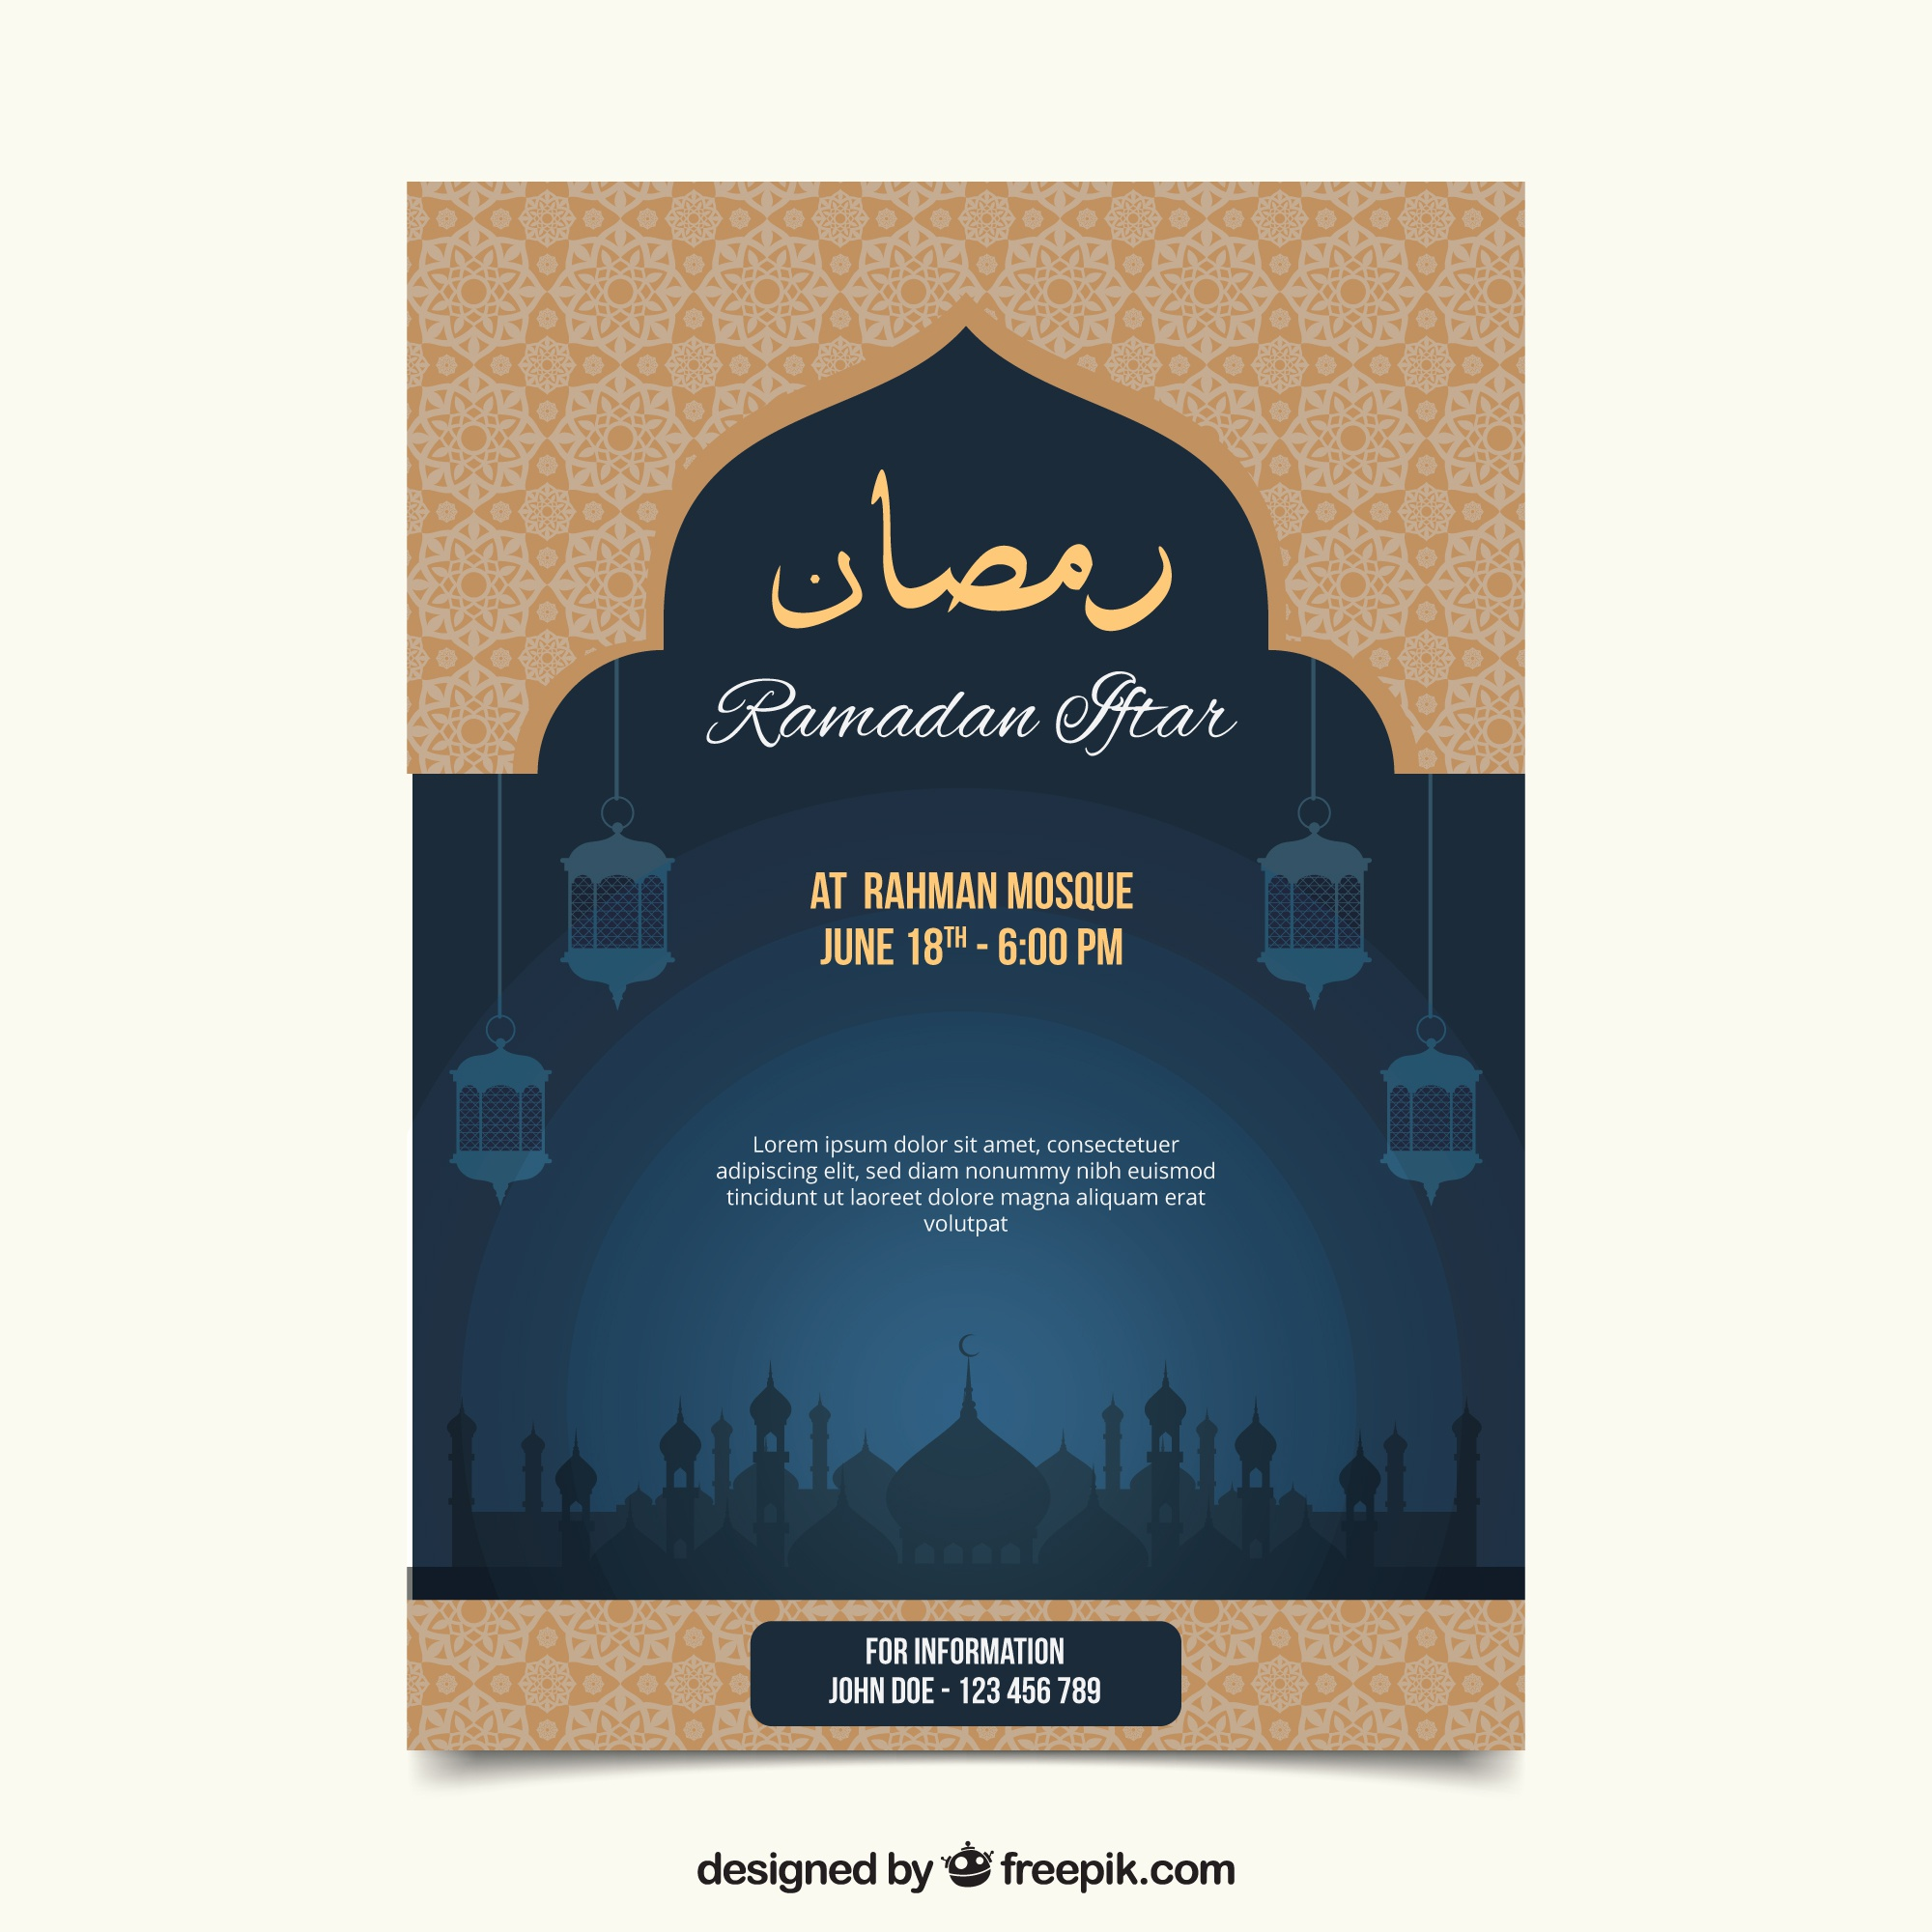 Iftar party invitation with mosque silhouette in flat style